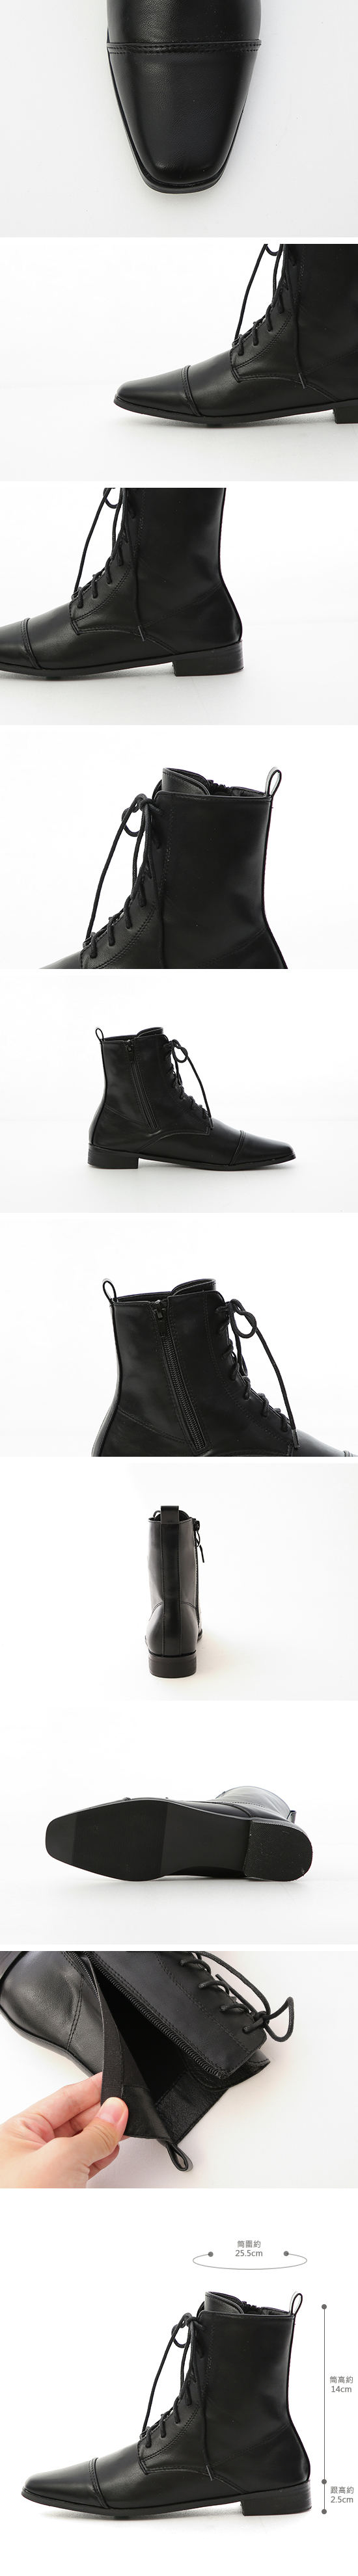 Square Toe Lace-Up Boots Black